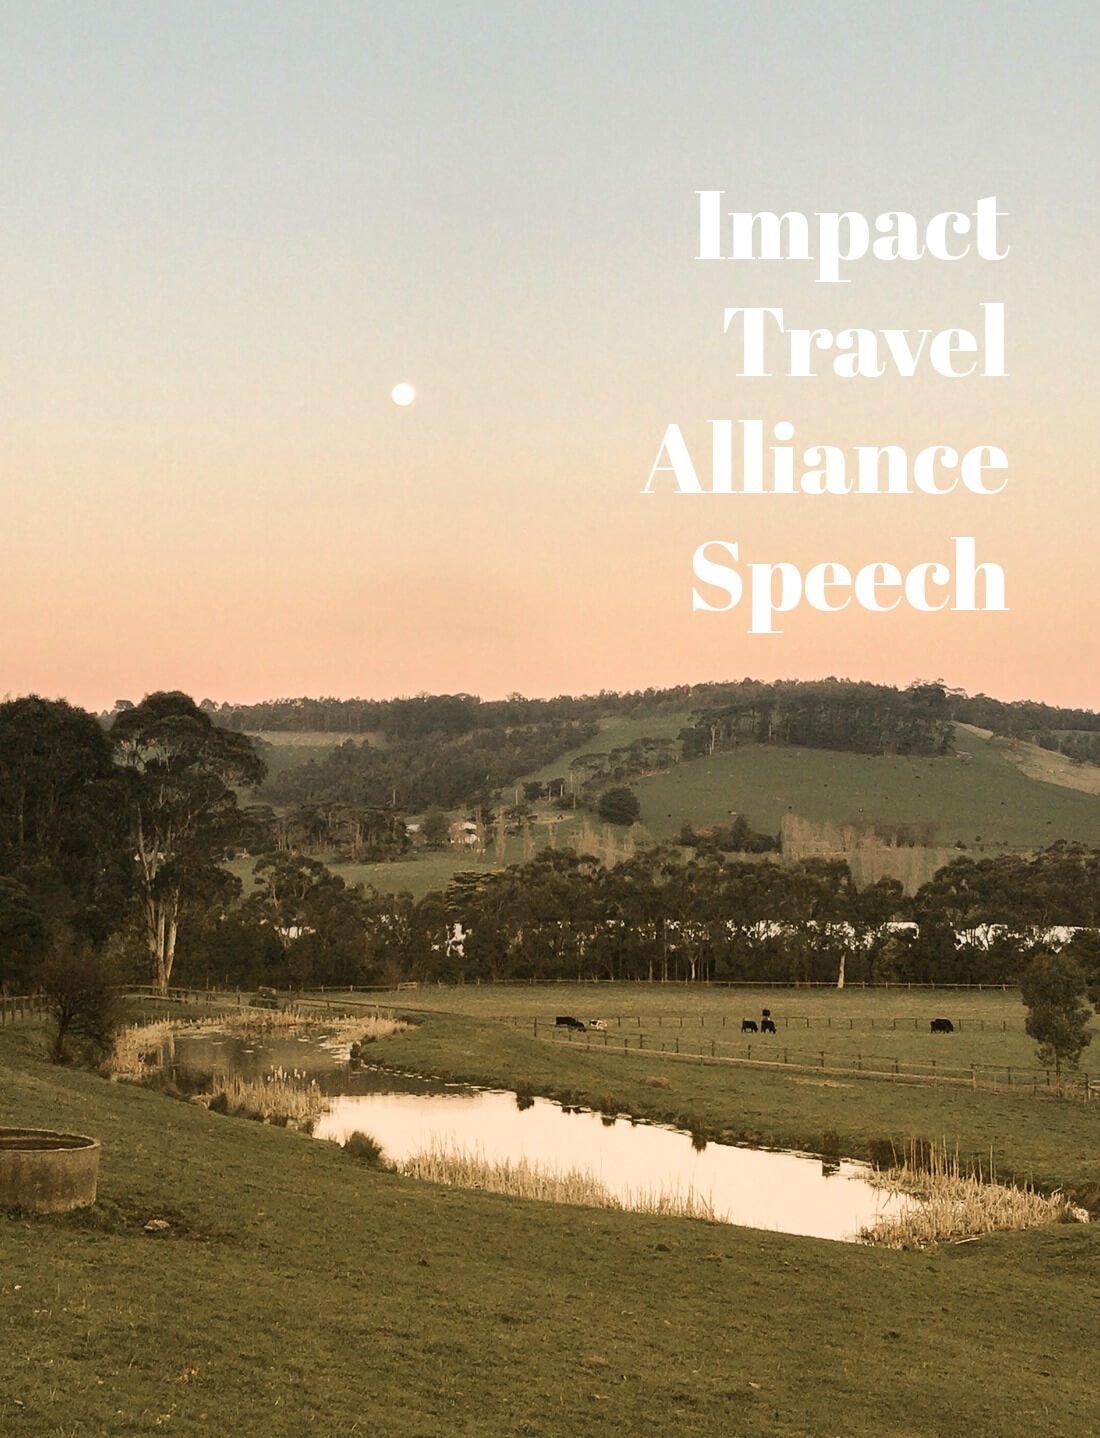 PROGRESS OVER PERFECTION – MY IMPACT TRAVEL ALLIANCE SPEECH